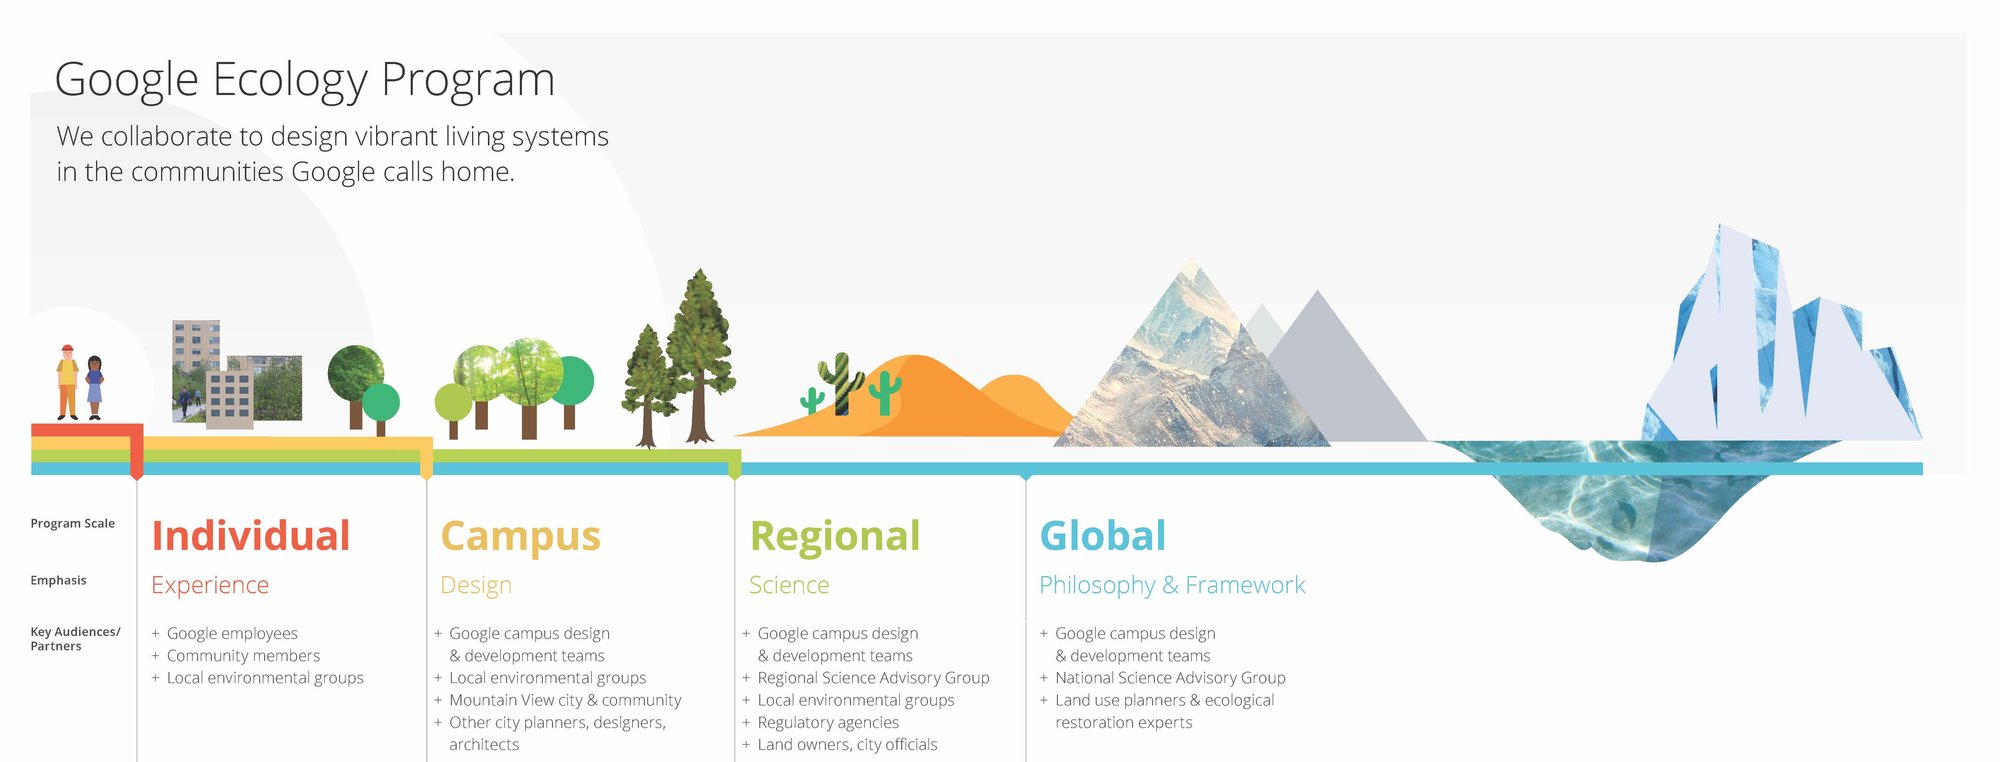 Google Ecology Program Infographic